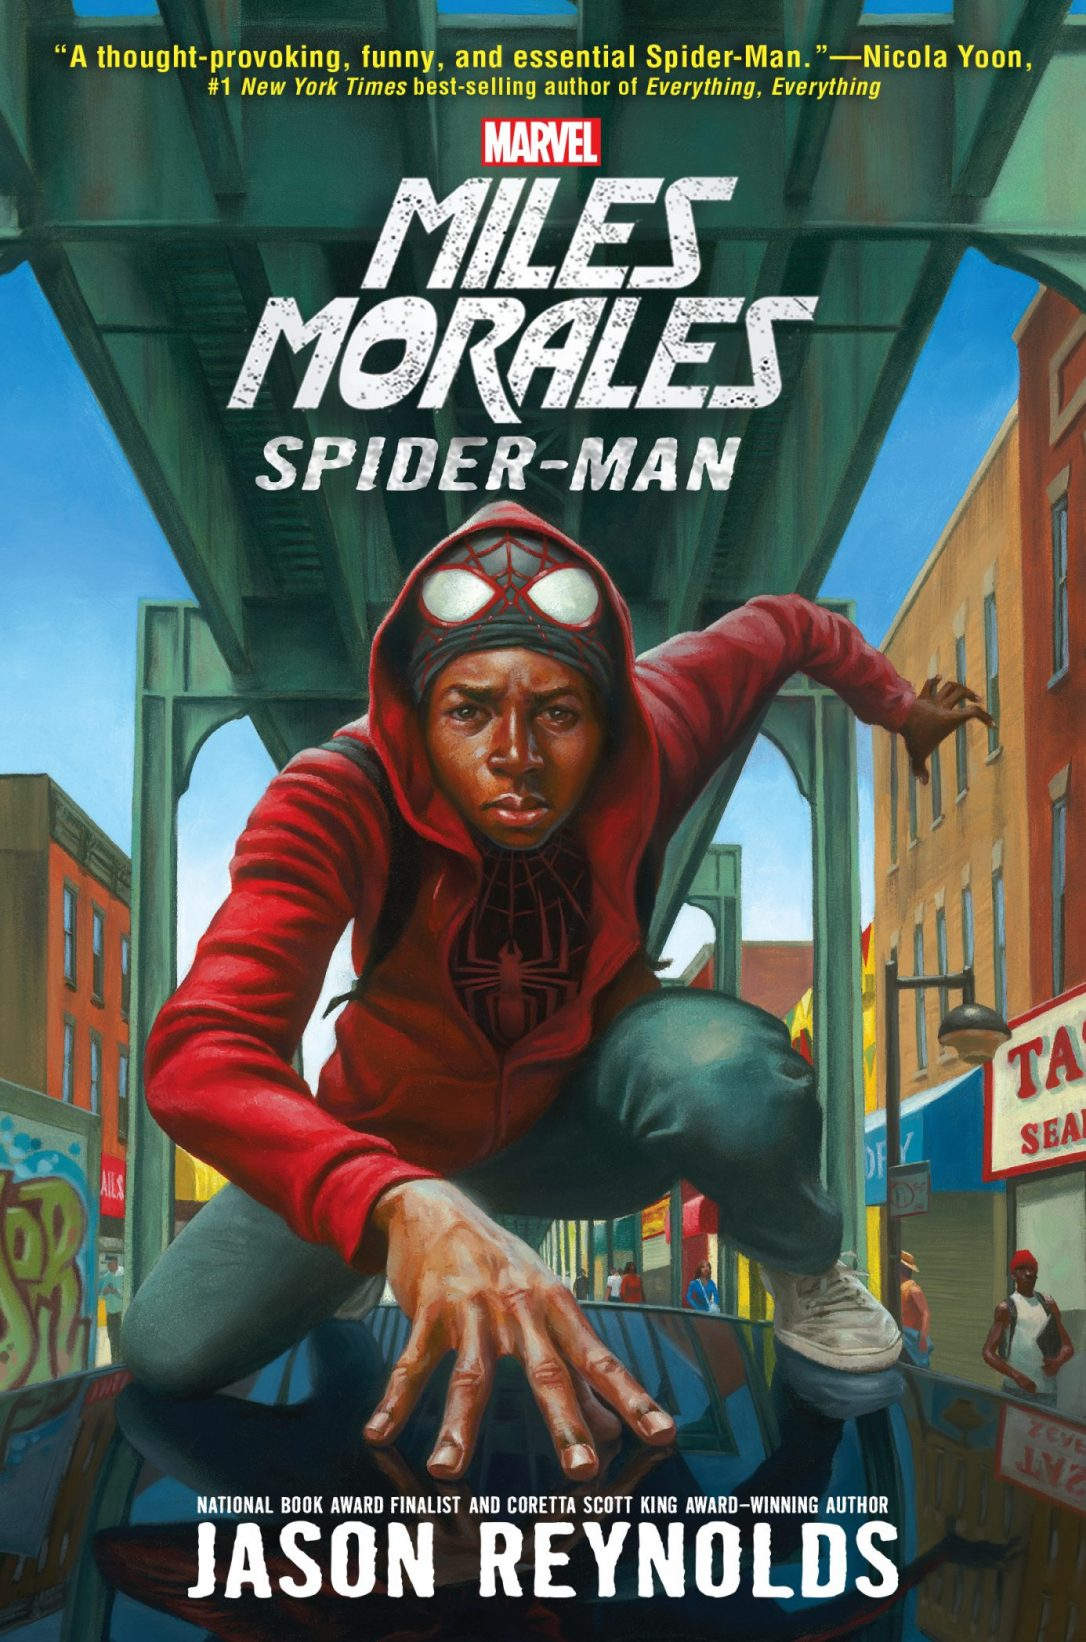 Download The Miles Morales Educator Guide For Free Today